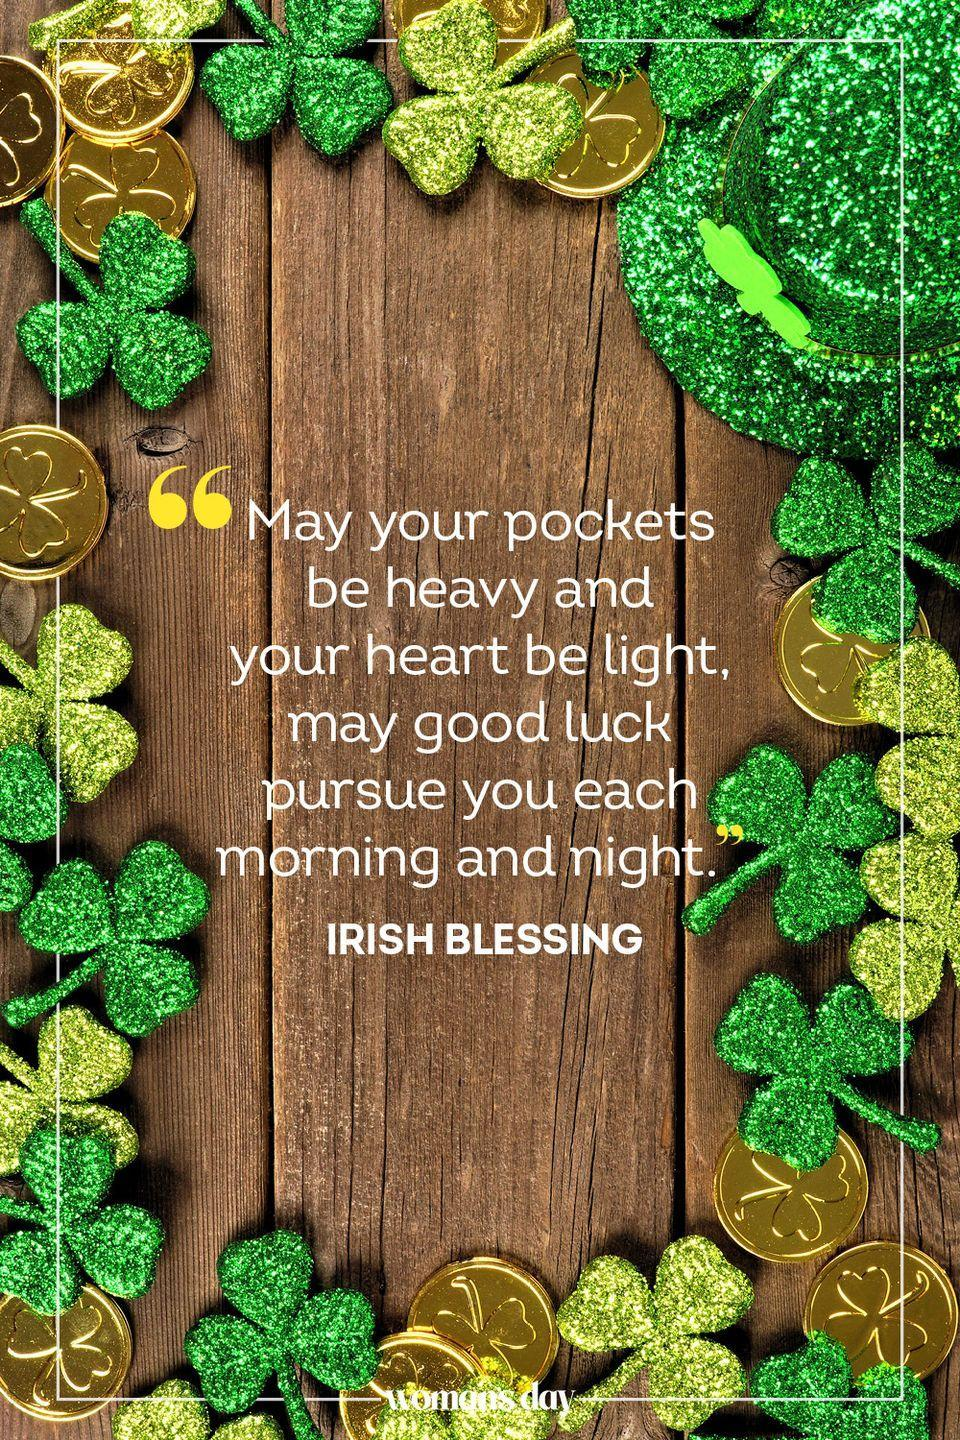 """<p>""""May your pockets be heavy and your heart be light, may good luck pursue you each morning and night."""" — Irish Blessing</p>"""